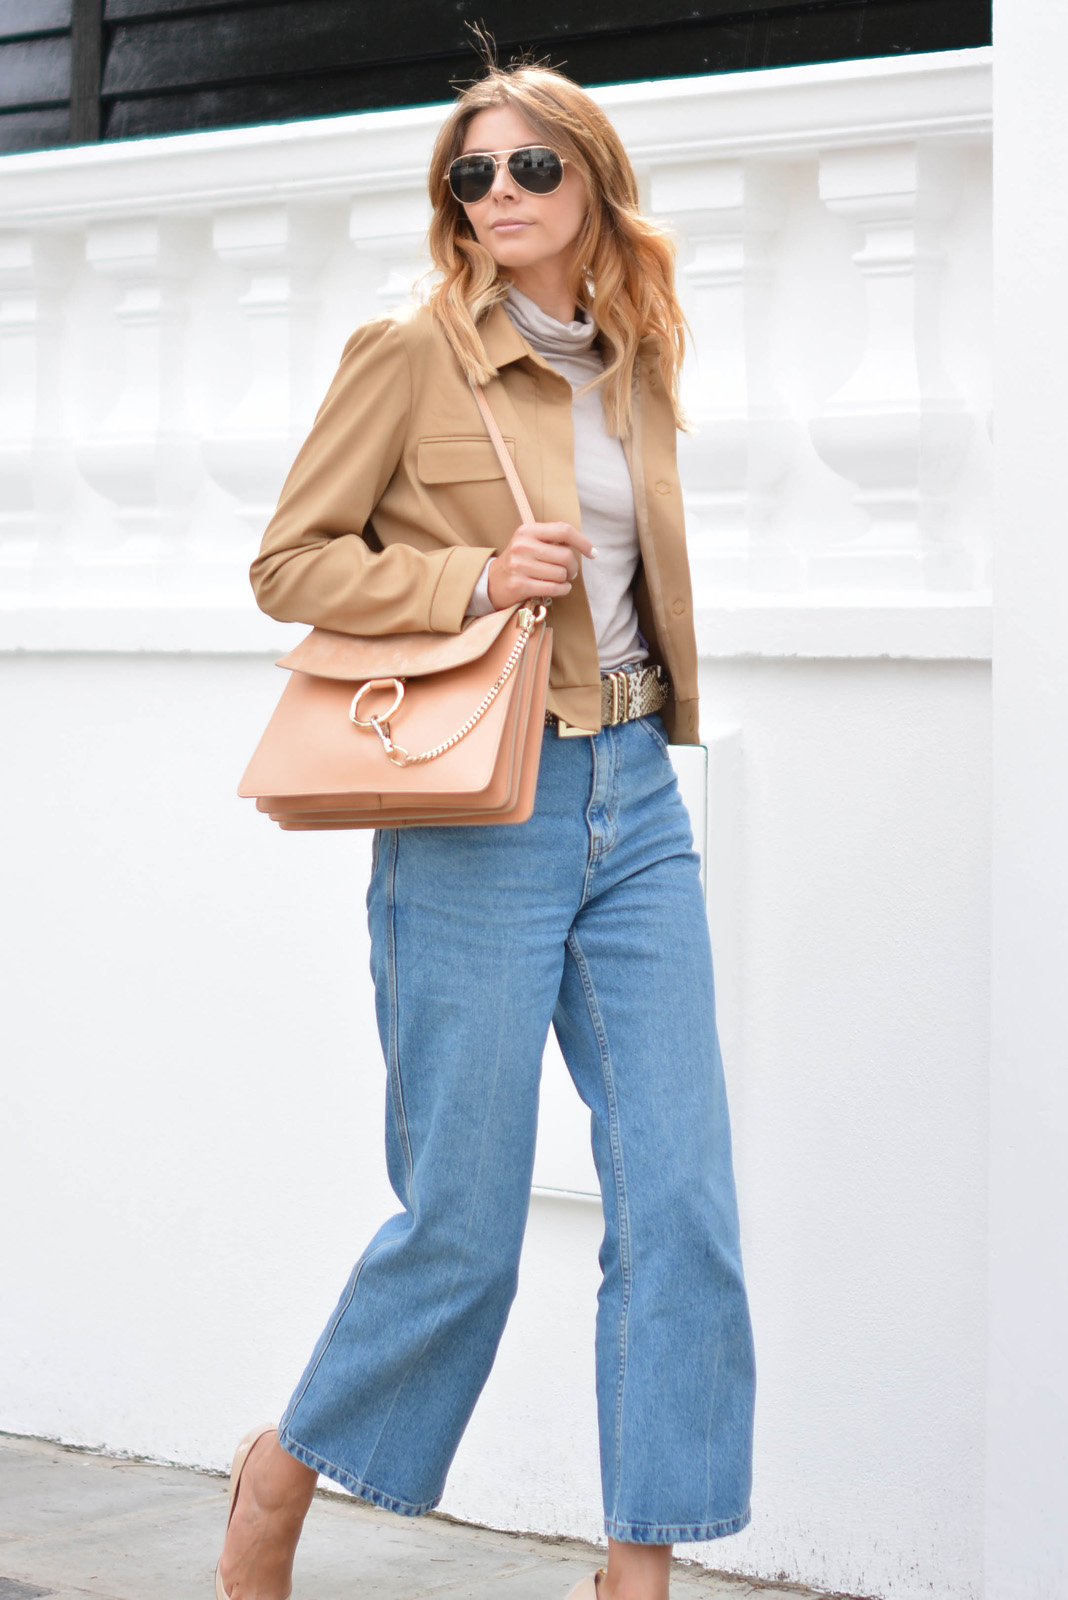 EJSTYLE wears Chloe Faye bag medium in Misty Beige, snakeskin belt, taupe roll neck top, light wash wide leg Topshop jeans, cropped camel jacket, aviator sunglasses